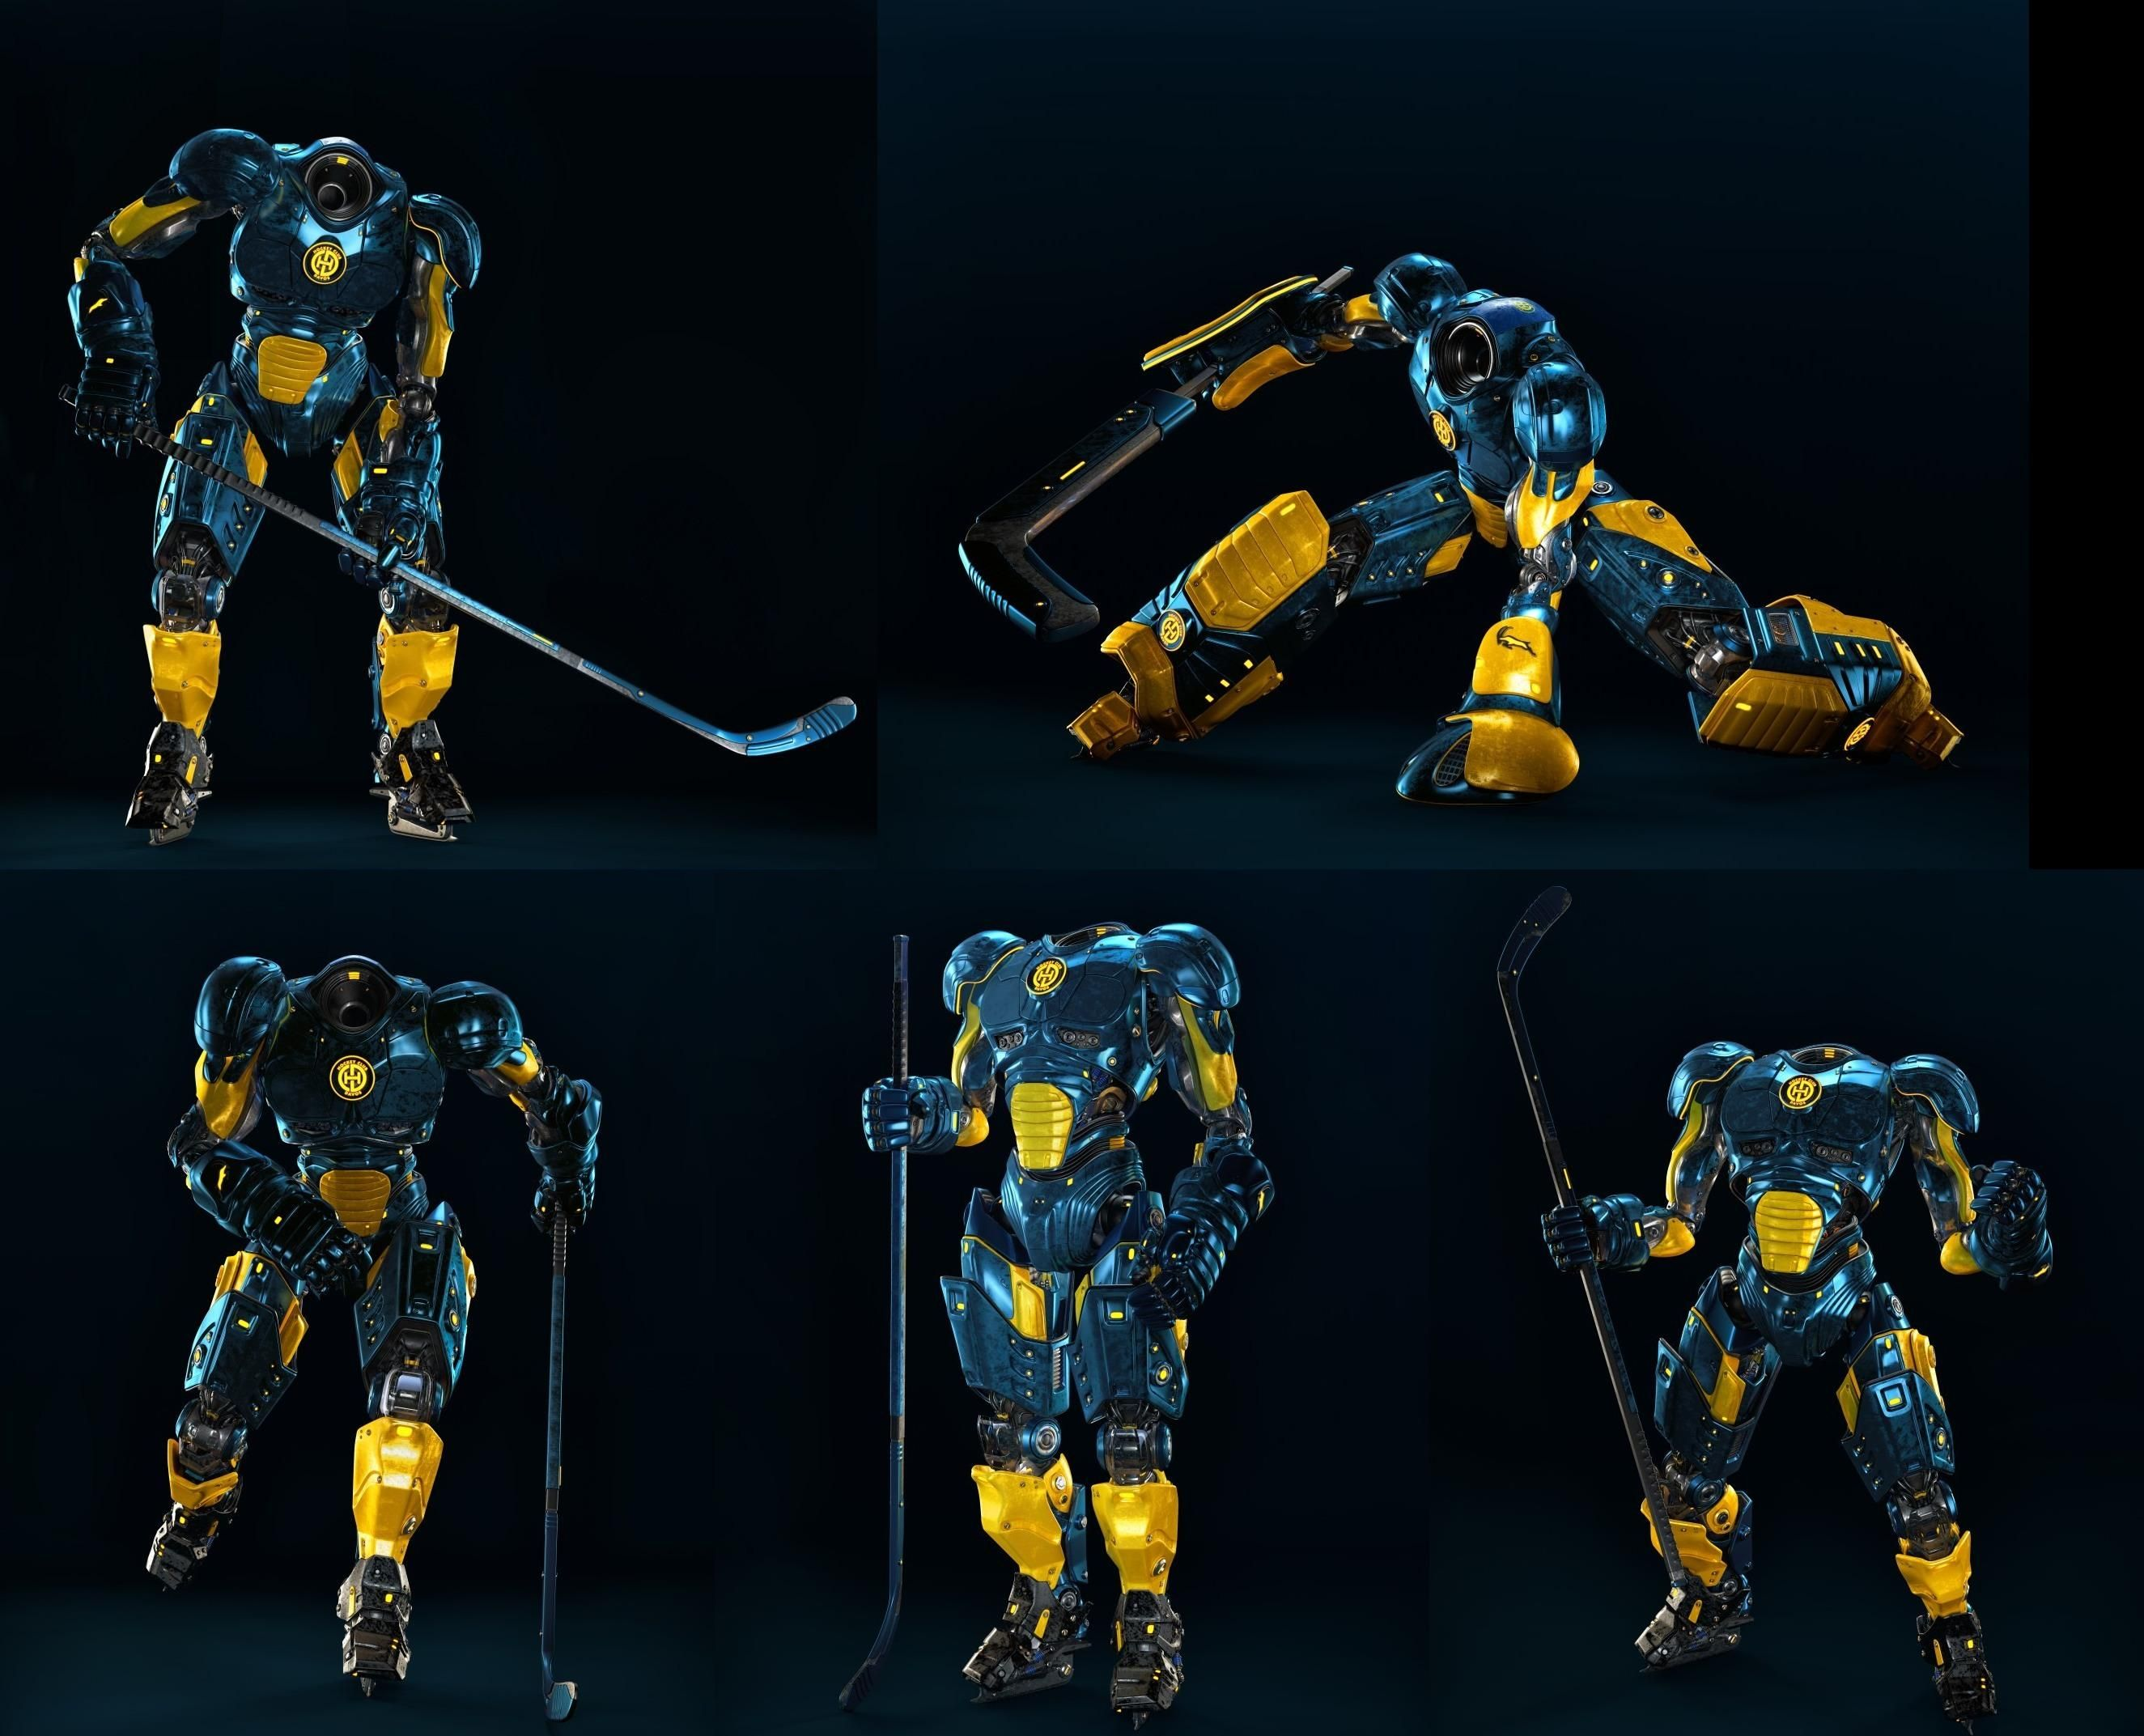 Hockey Player Robots By Vladislav Ociacia